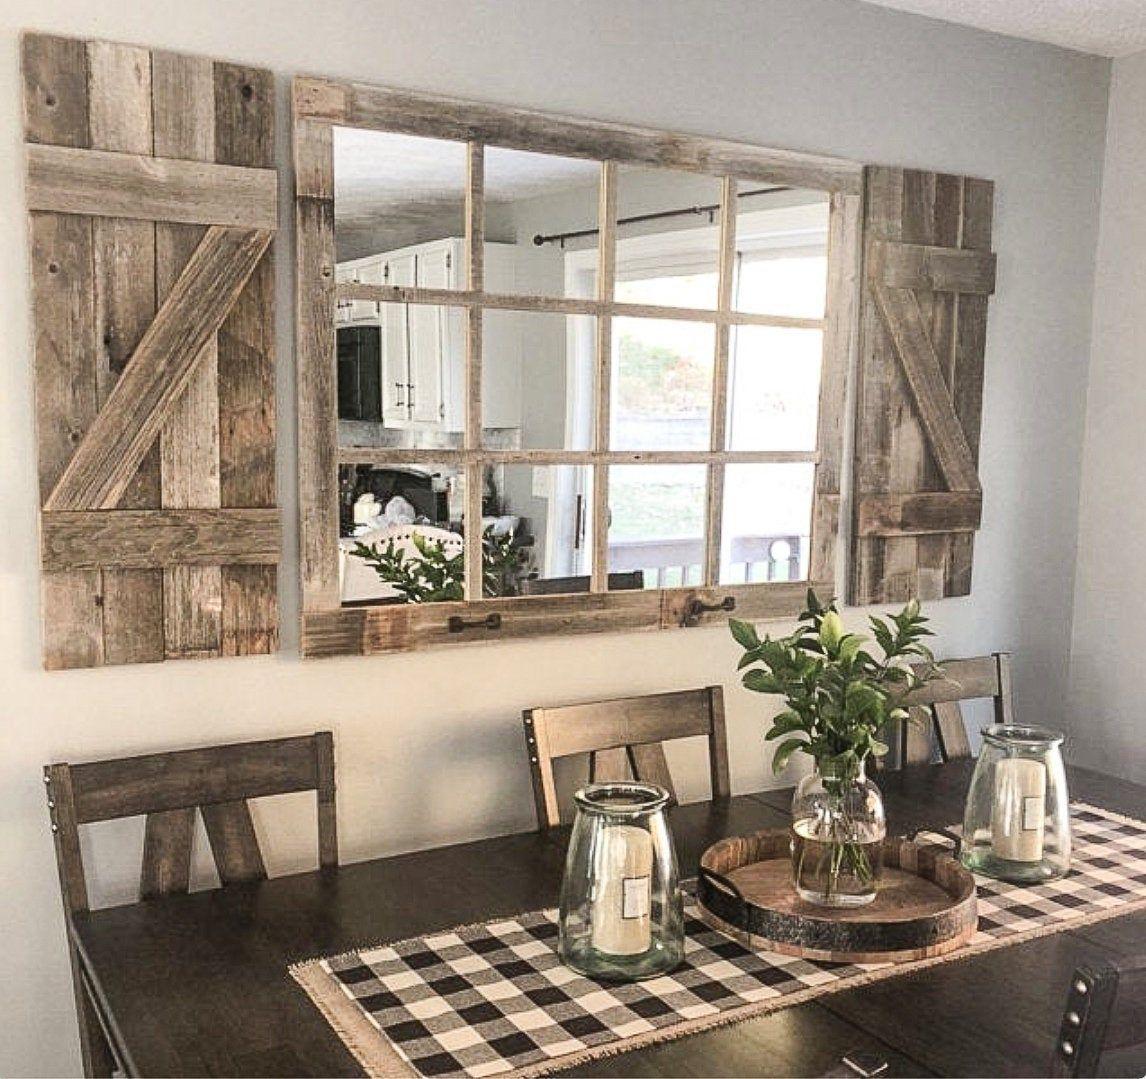 46x 36 Farmhouse Wall Decor Window Mirror Rustic Etsy Farmhouse Decor Living Room Farmhouse Dining Room Dining Room Wall Decor